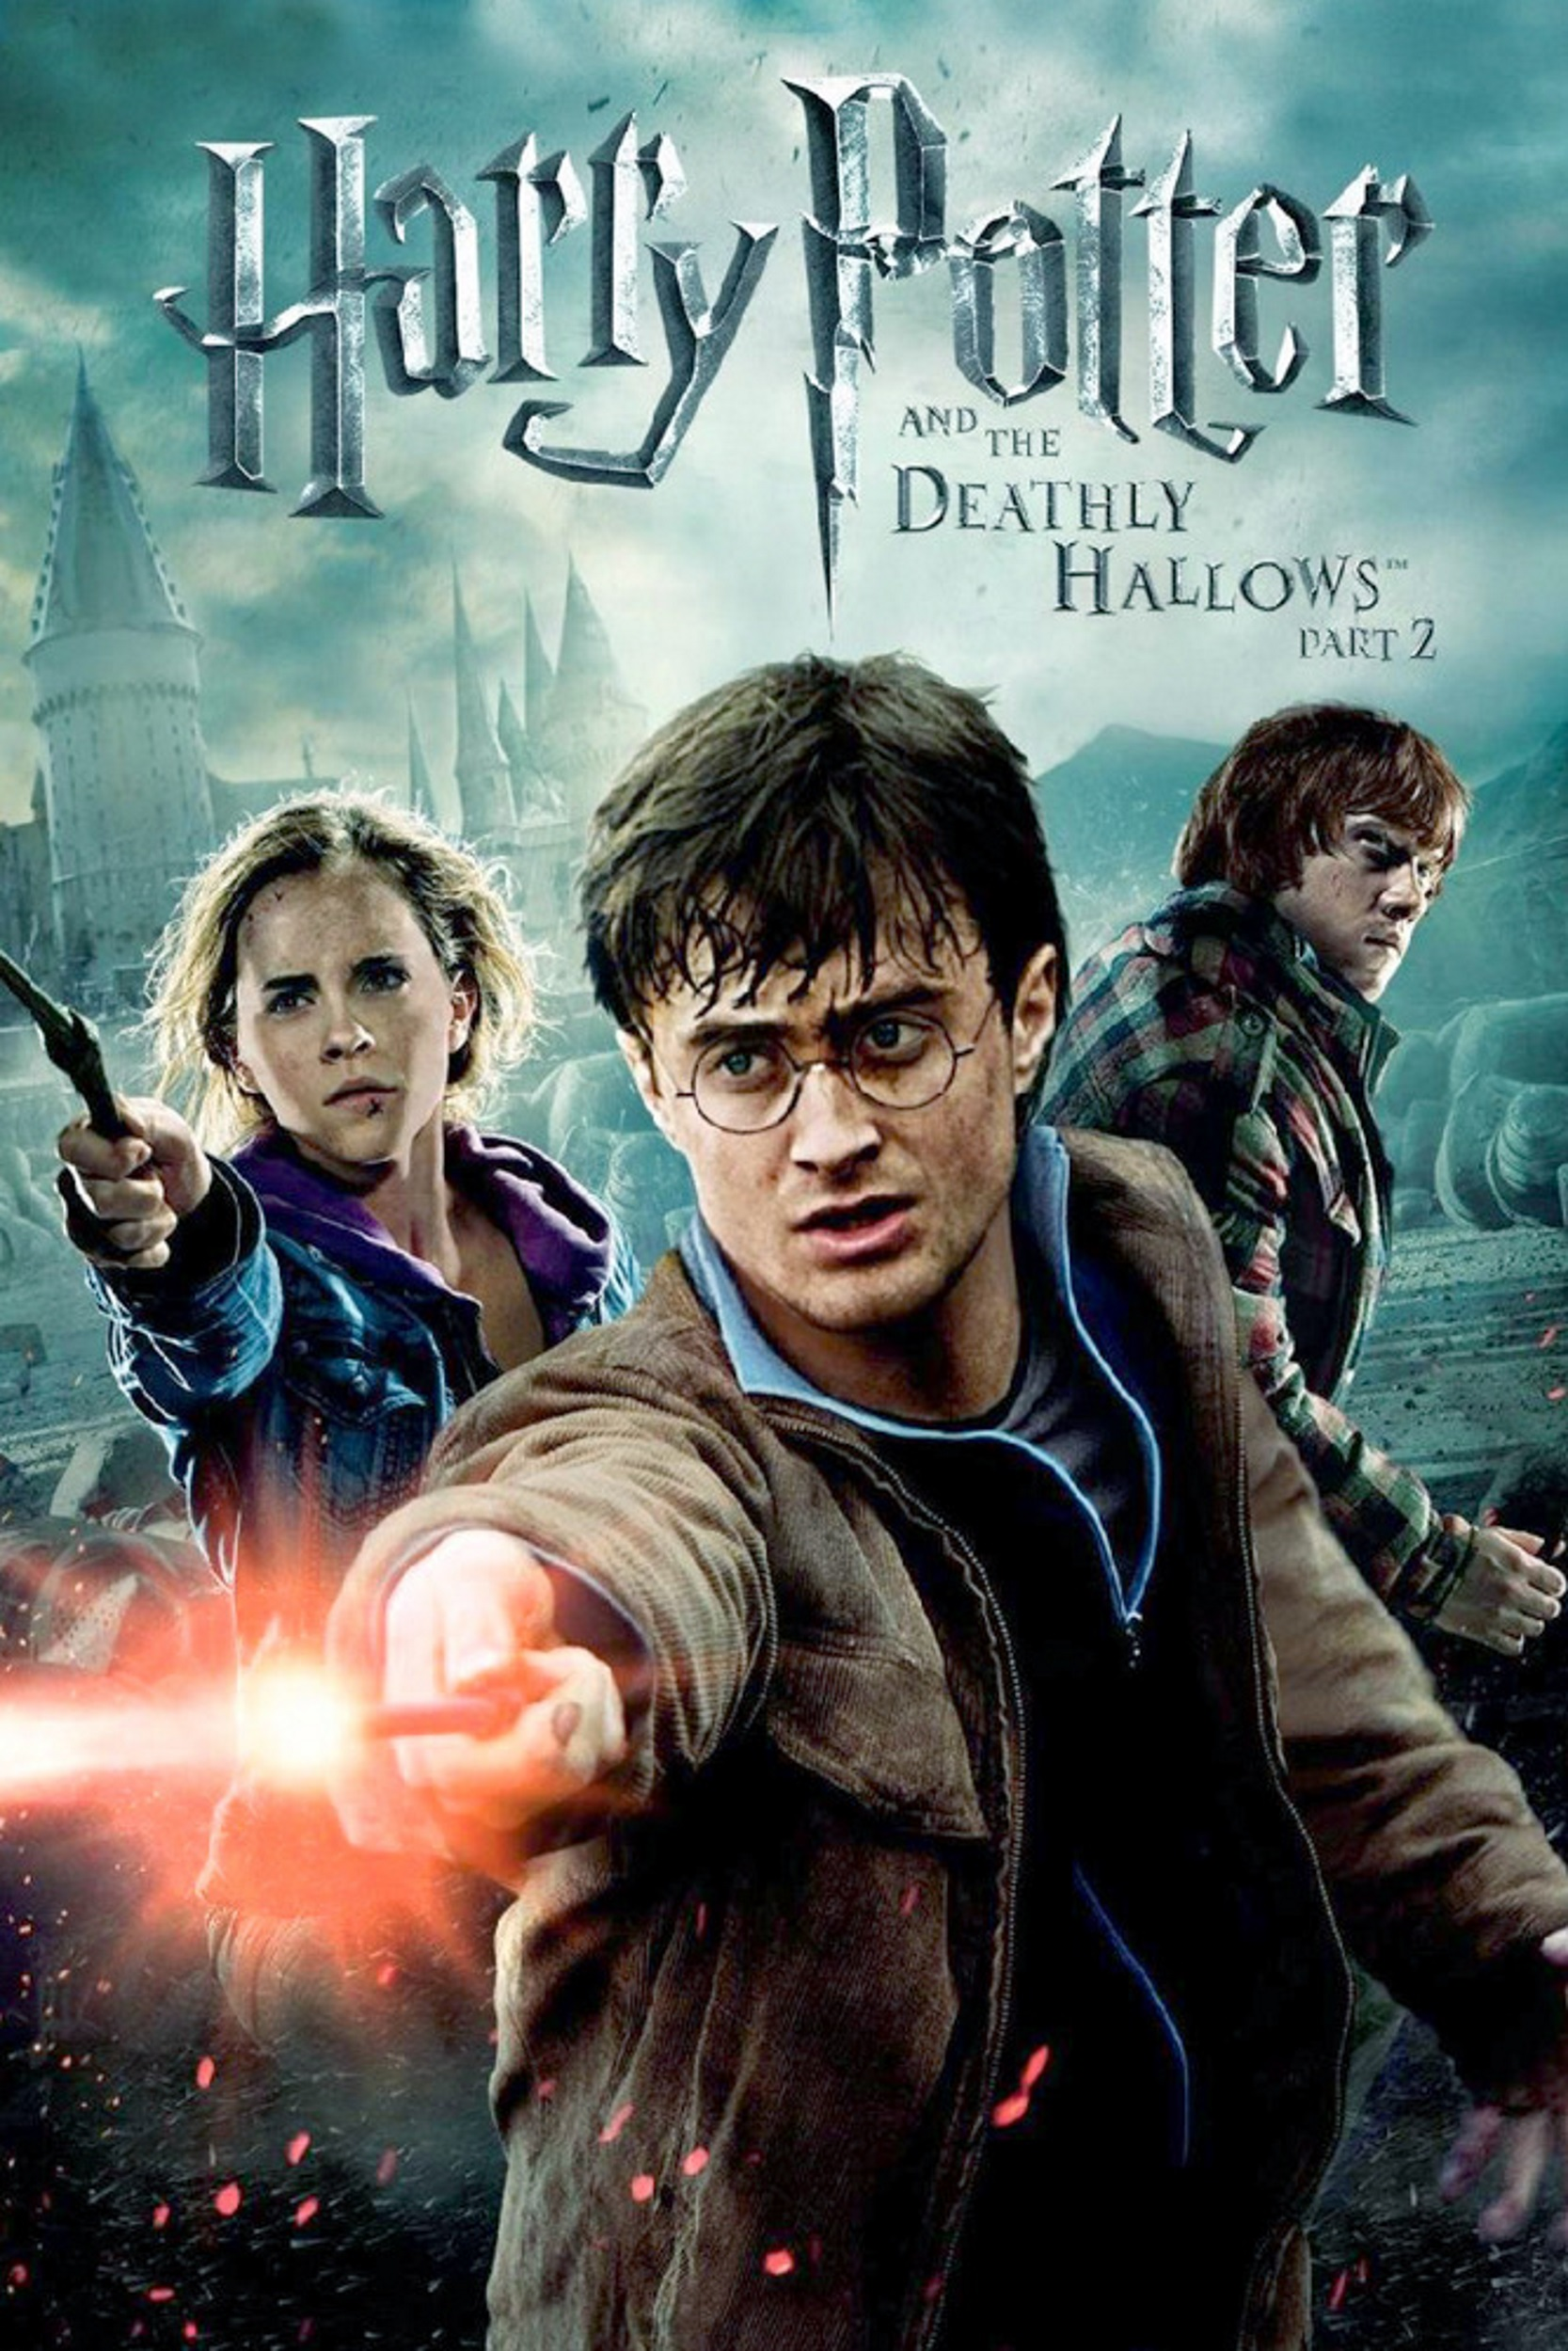 Jual Dvd Kartun Anak Harry Potter And Deathly Hallows Part 2 2011 Lazada Indonesia